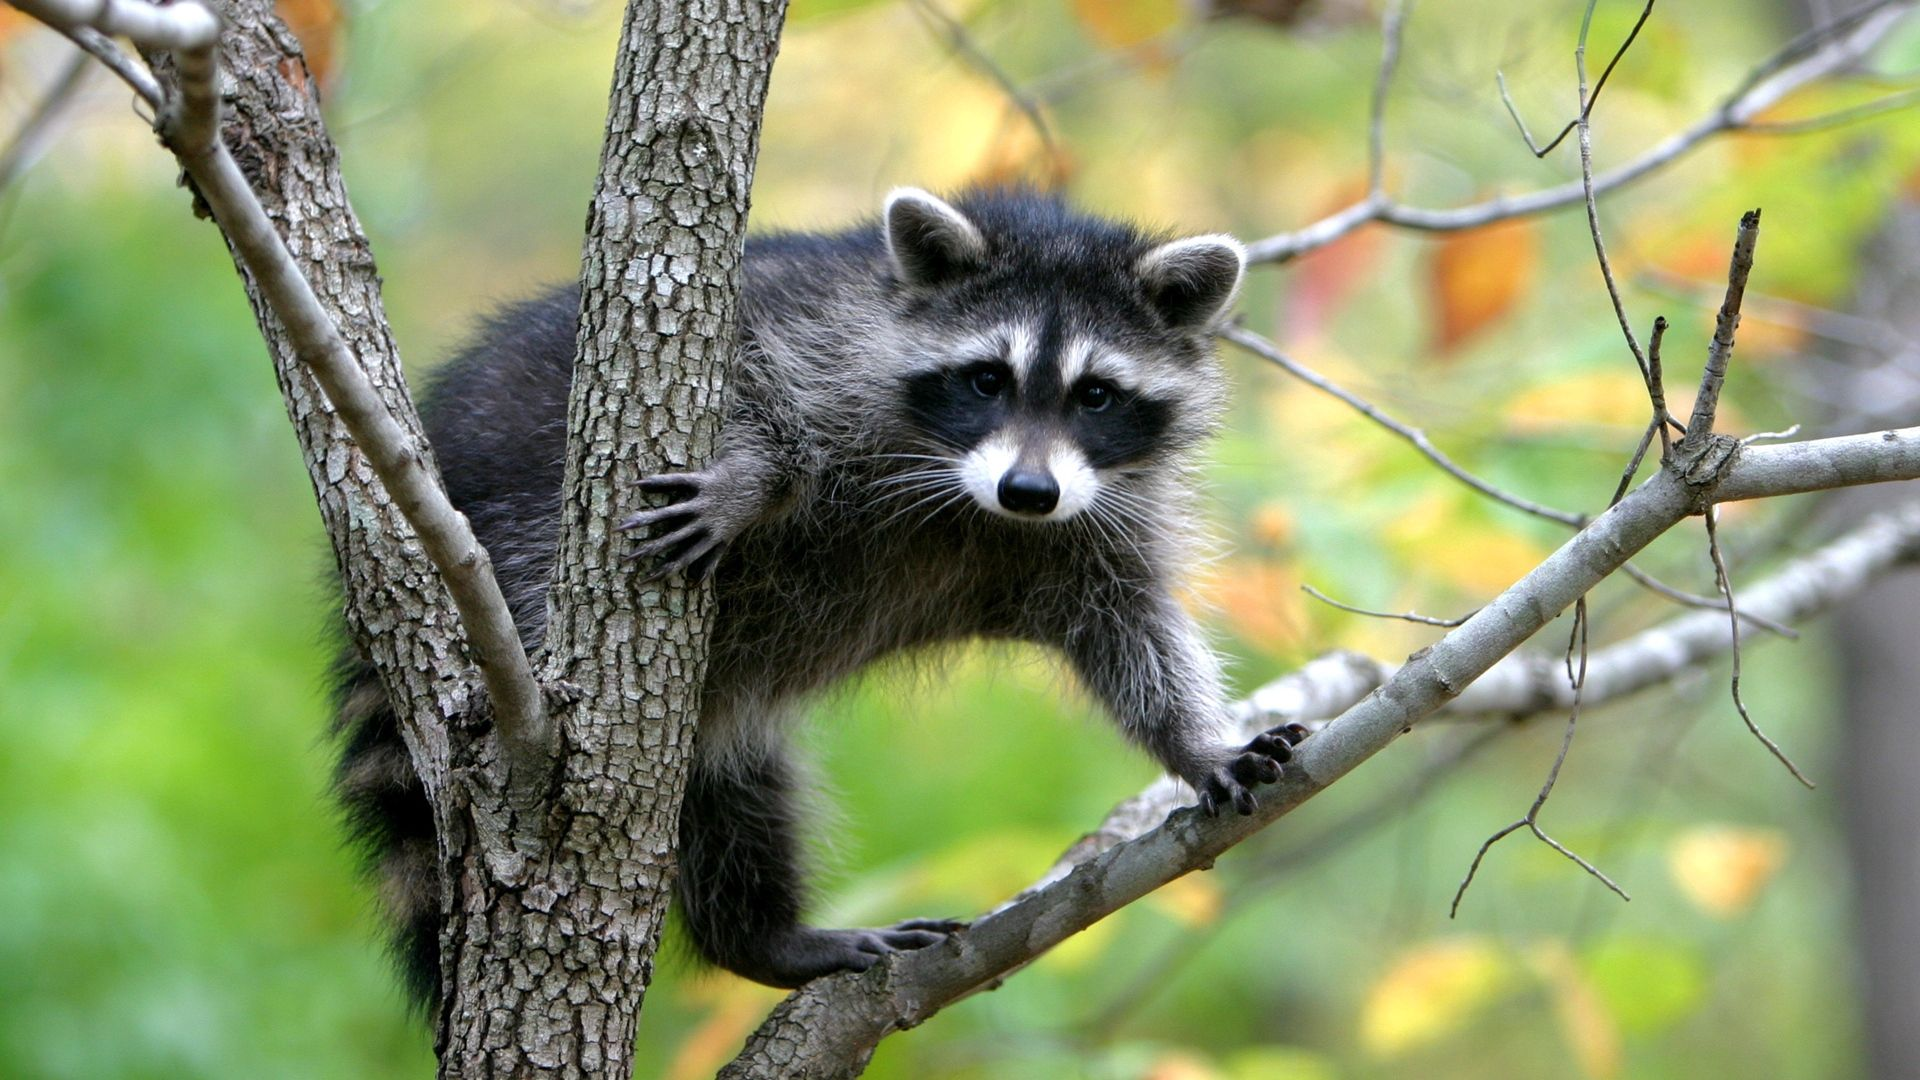 113807 Screensavers and Wallpapers Raccoon for phone. Download Animals, Trees, Branches, Animal, Climb, Raccoon pictures for free